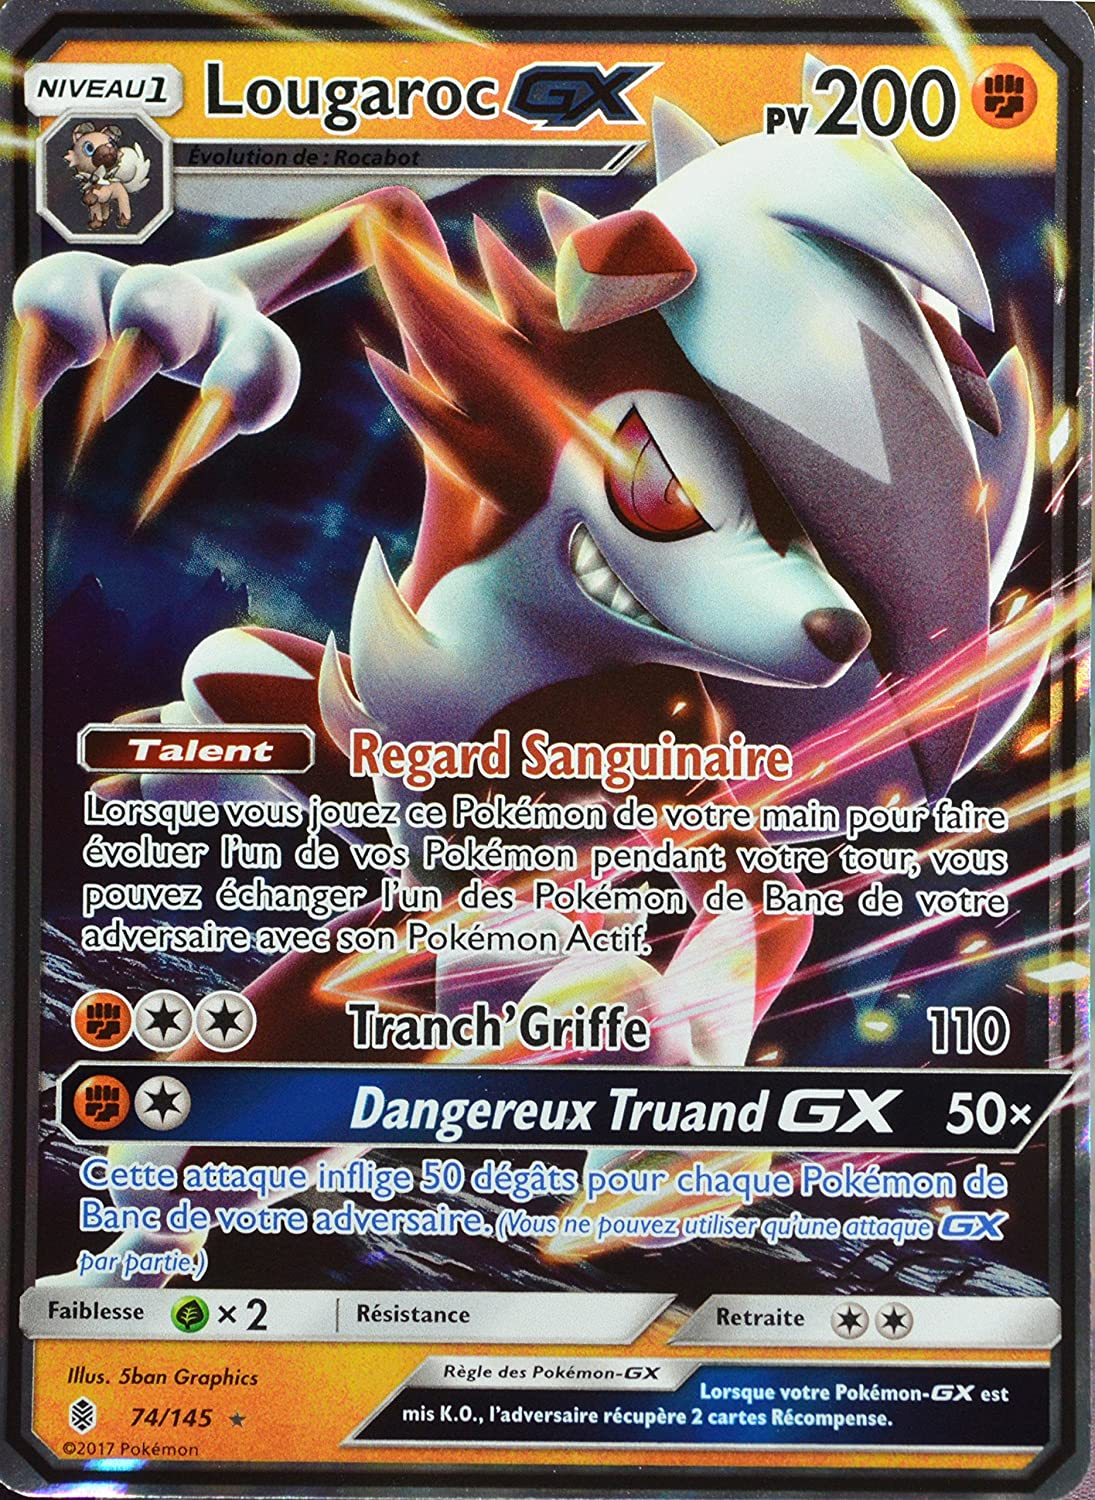 carte pokemon lougaroc gx carte Pokémon 74/145 Lougaroc GX (Forme Nocturne) 200 PV: Amazon